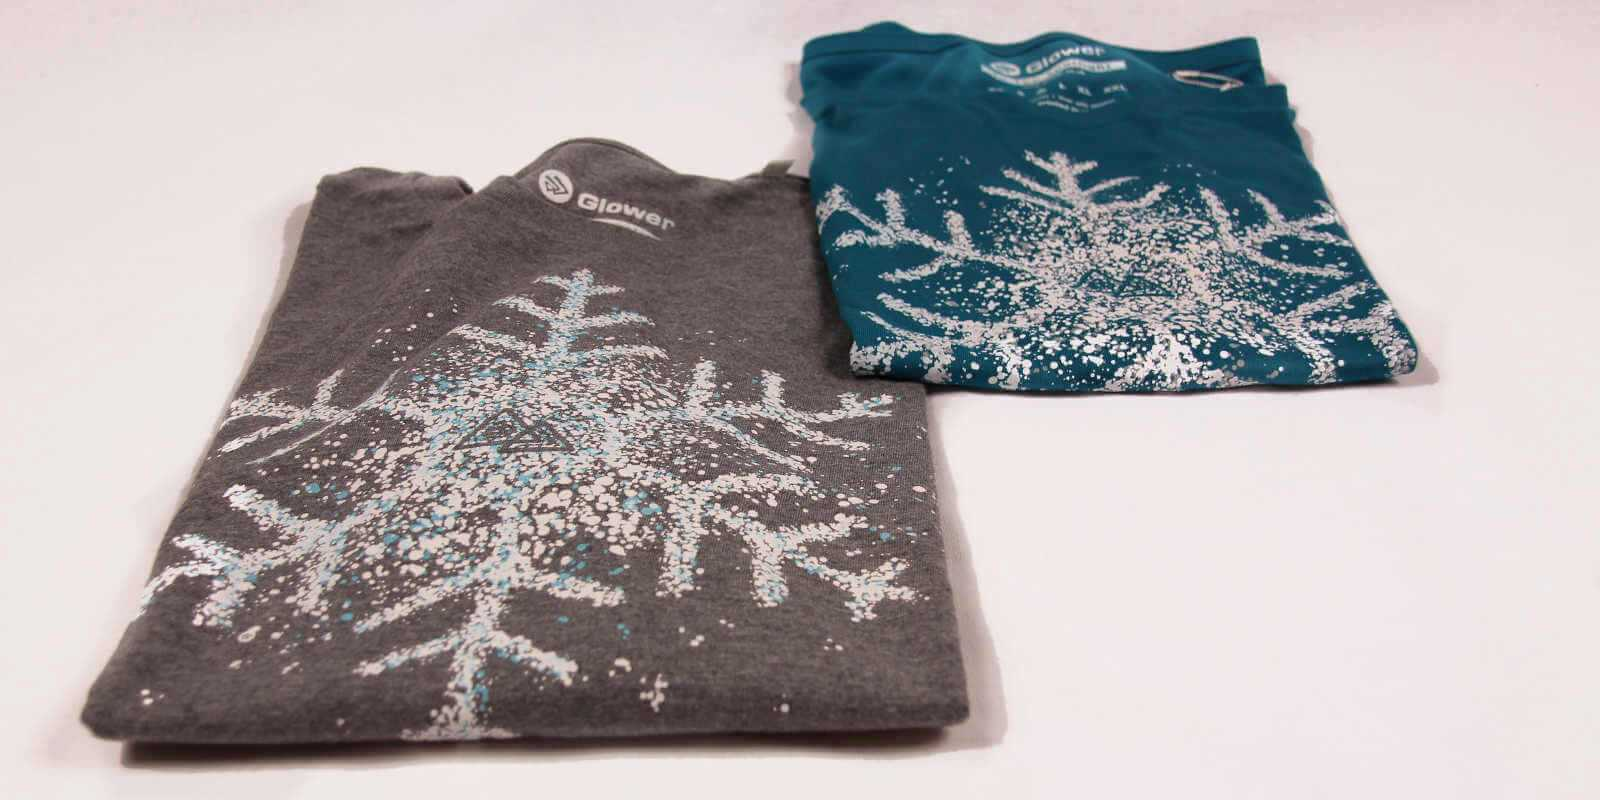 Snowboarding print tshirts In the Spotlight in Glower shop